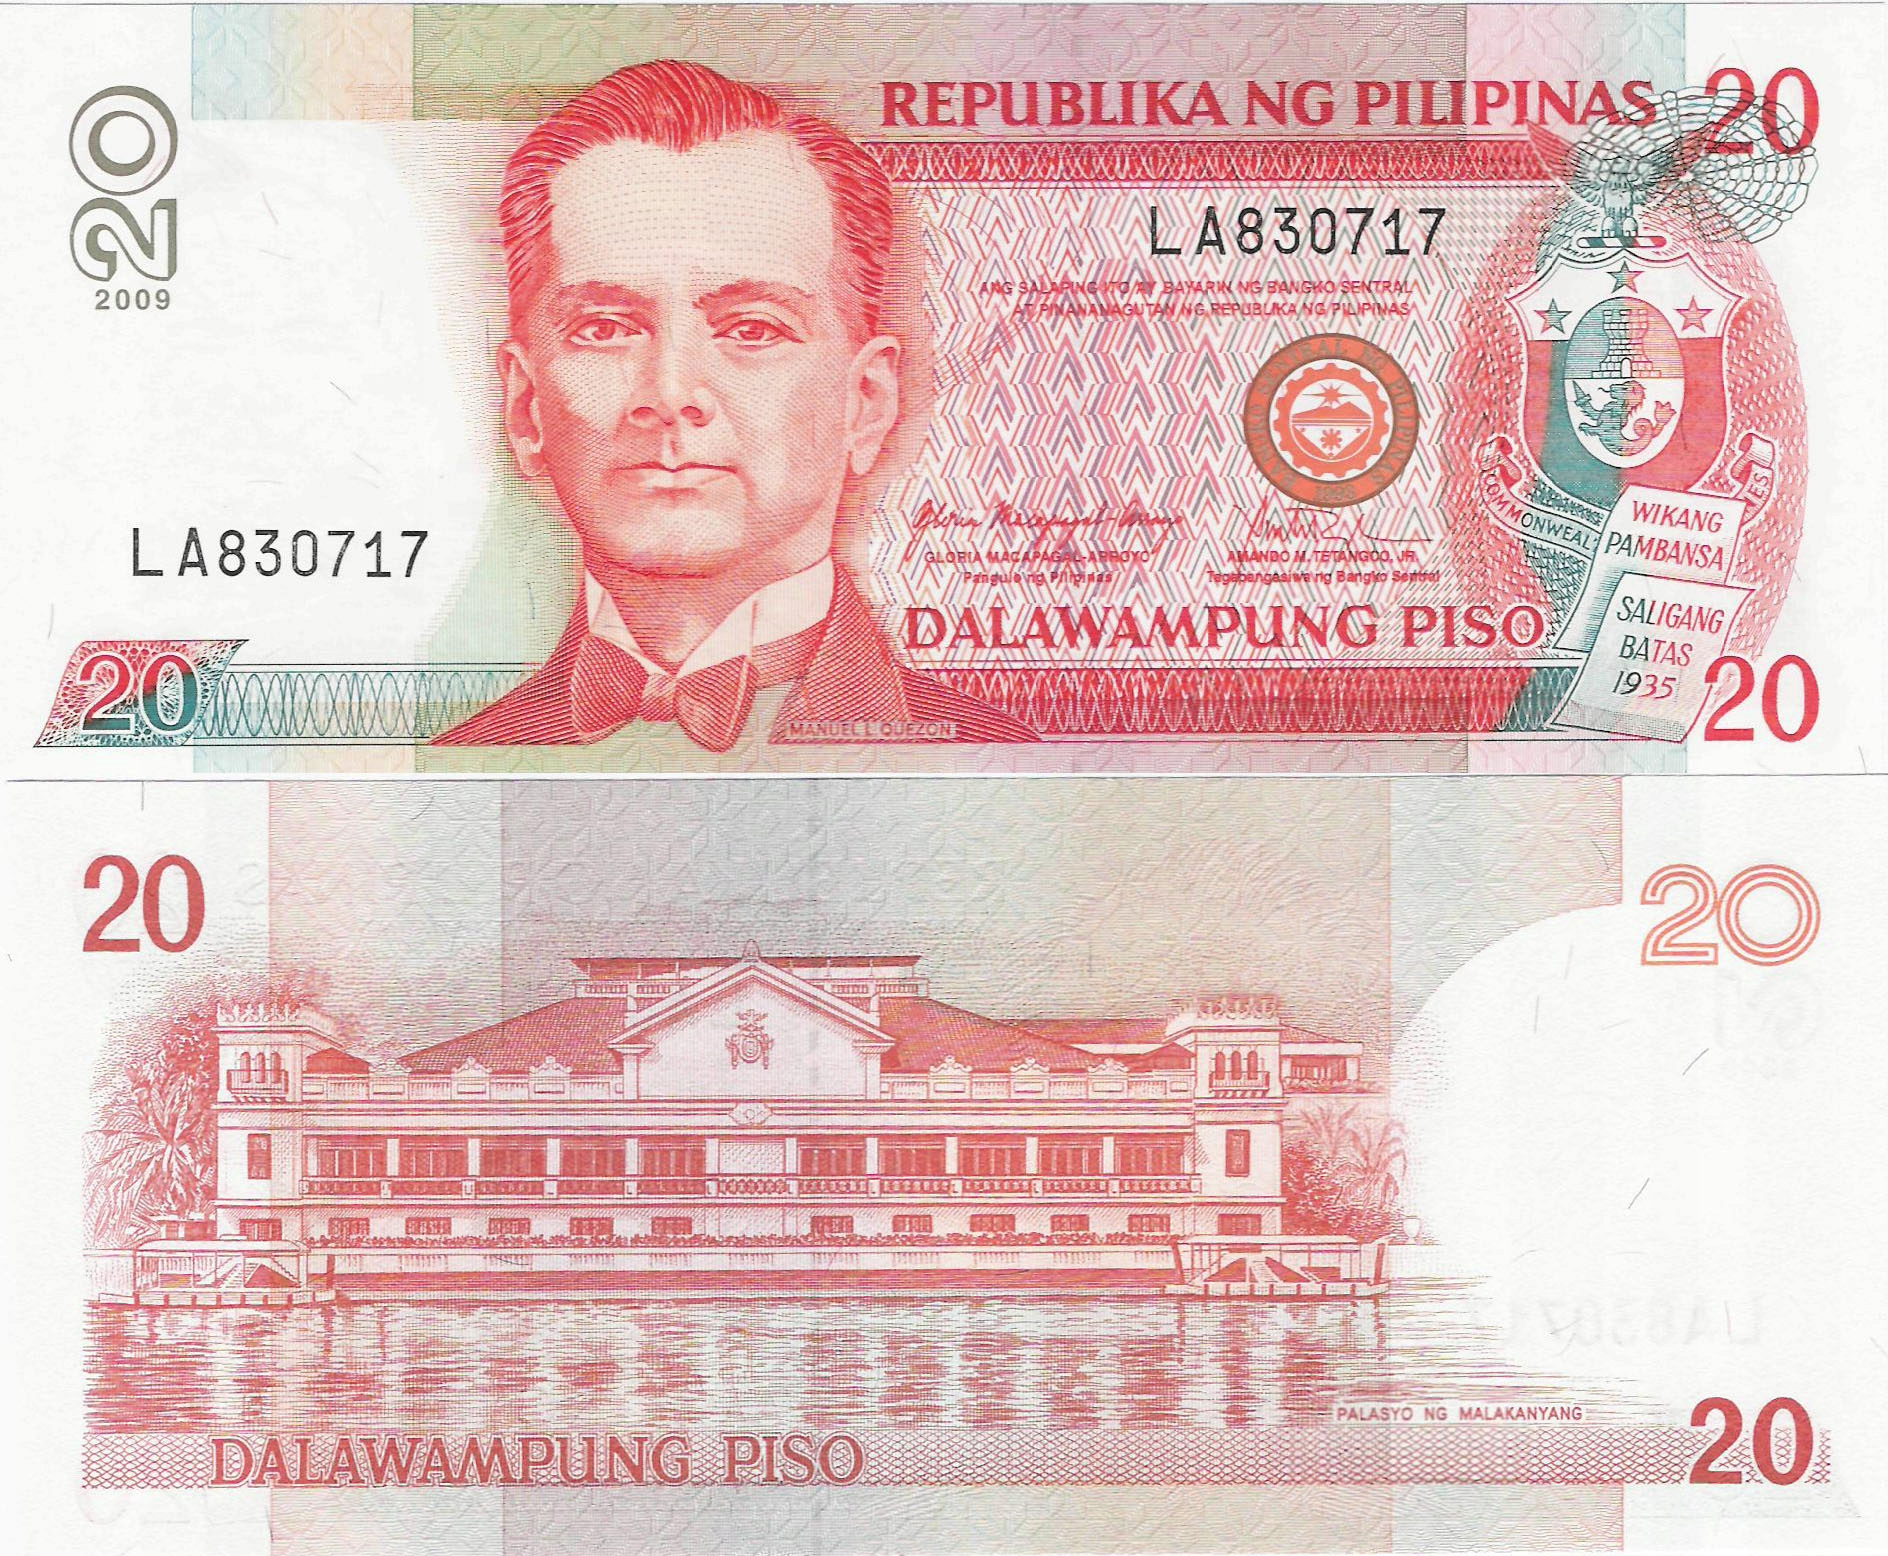 Filipiny 2009 - 20 piso - Pick 182 UNC